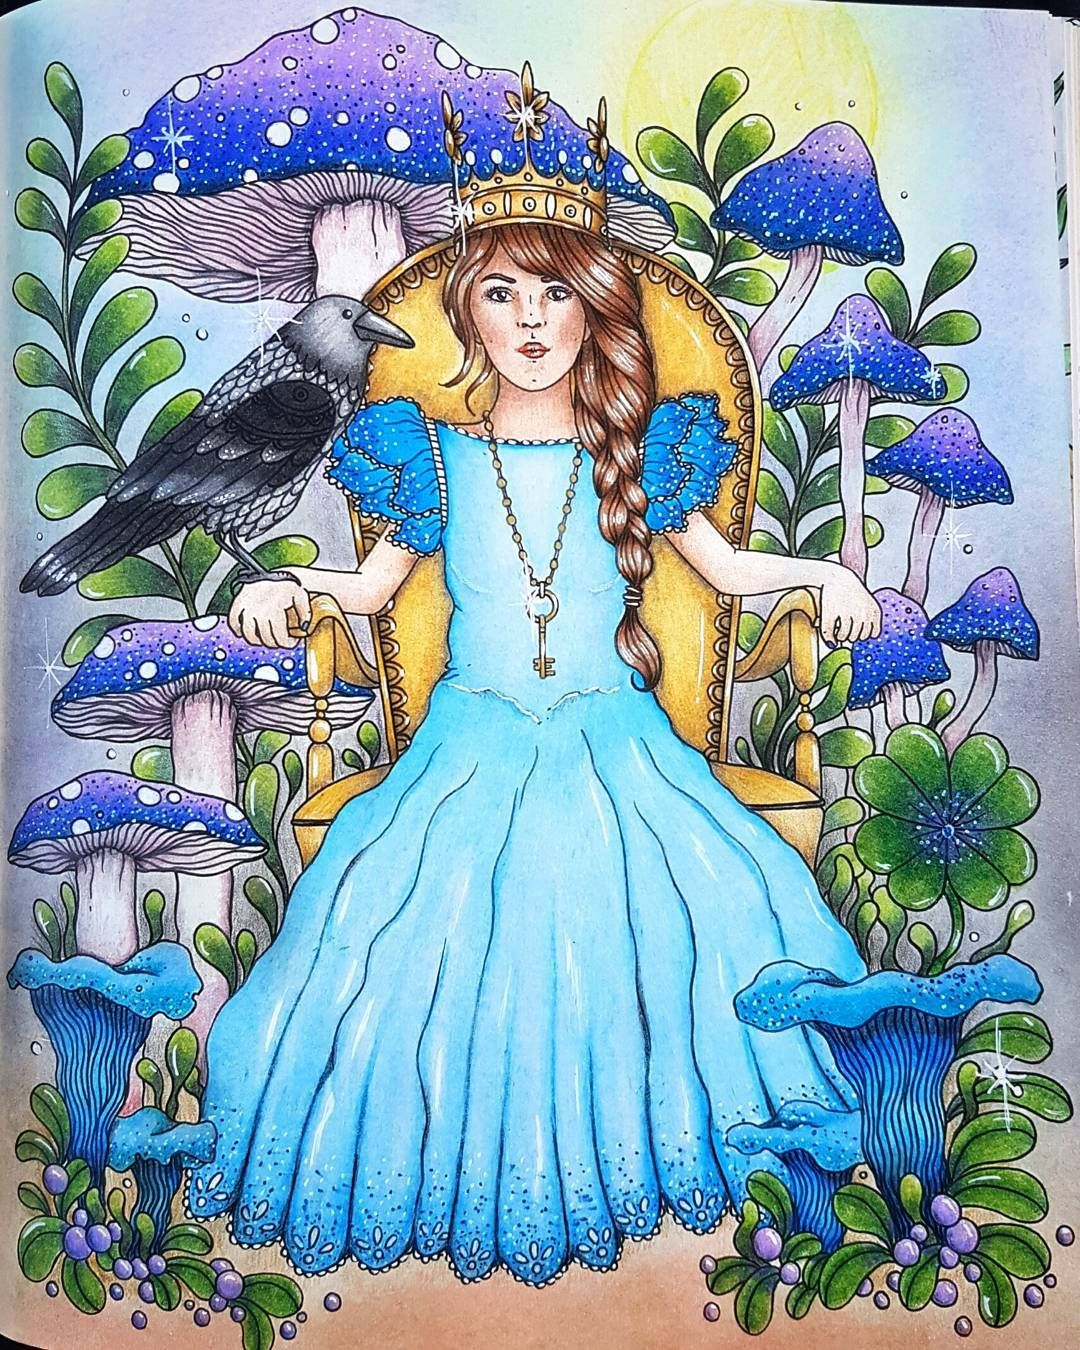 The finished picture in daylight. Much more fair to the colors. #dagdrömmar #målarbokförvuxna #adultcoloringbook #hannakarlzon @hannakarlzon #adultcolouring #målarbok #beautifulcoloring #polychromos #ilovecoloring #coloring_secrets #coloringmasterpiece #daydreamscolouring #mycreativeescape #artecomoterapia #arte_e_colorir #fangcolourfulworld #coloringaddict #coloringaddicted #coloring_secrets #coloringmasterpiece #daydreamscolouring #bayan_boyan #målarböckerförvuxnaalabondmoran